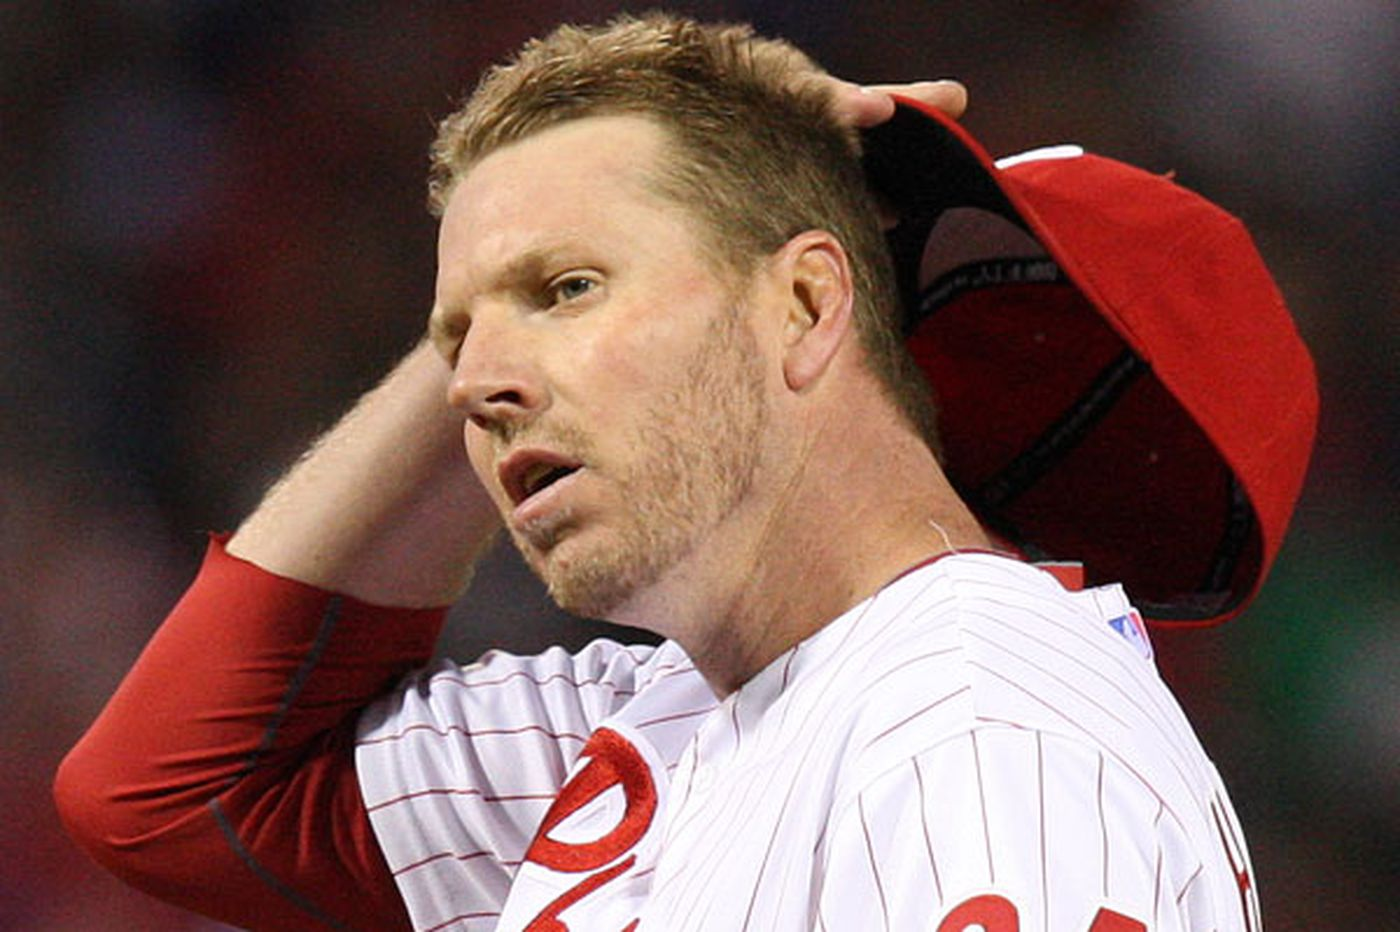 Optimism after Halladay's surgery